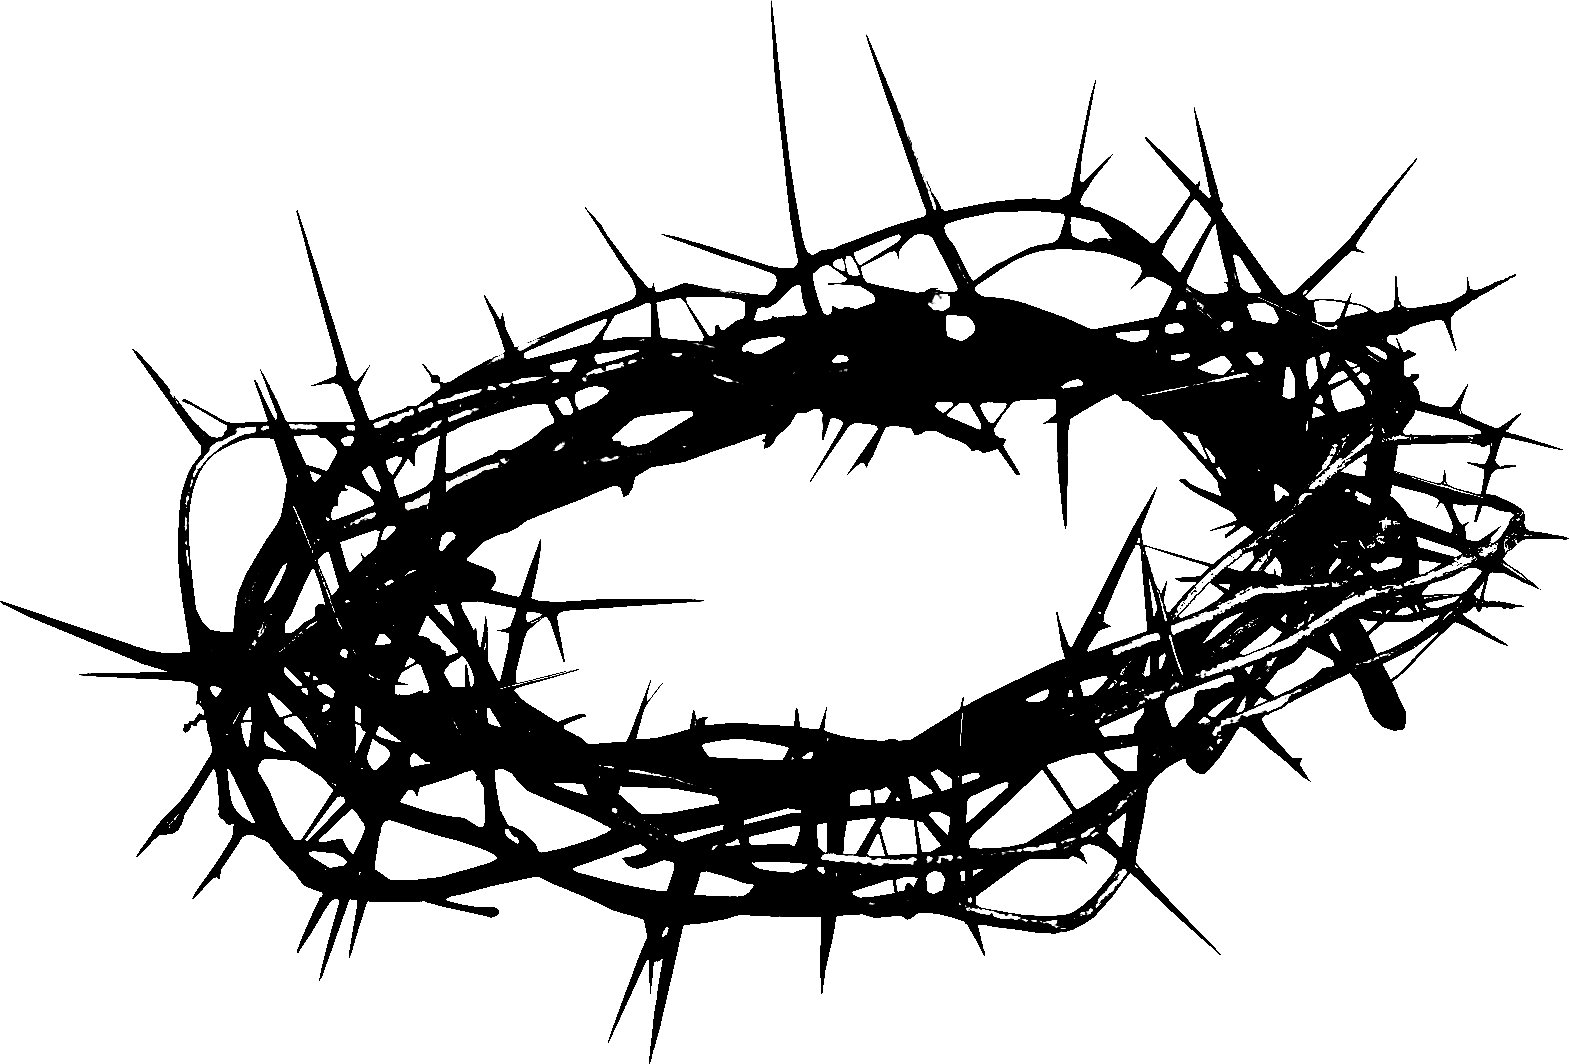 Crown of thorns transparent background clipart image free download Crown of thorns artwork. Add some colorful flowers to make a ... image free download